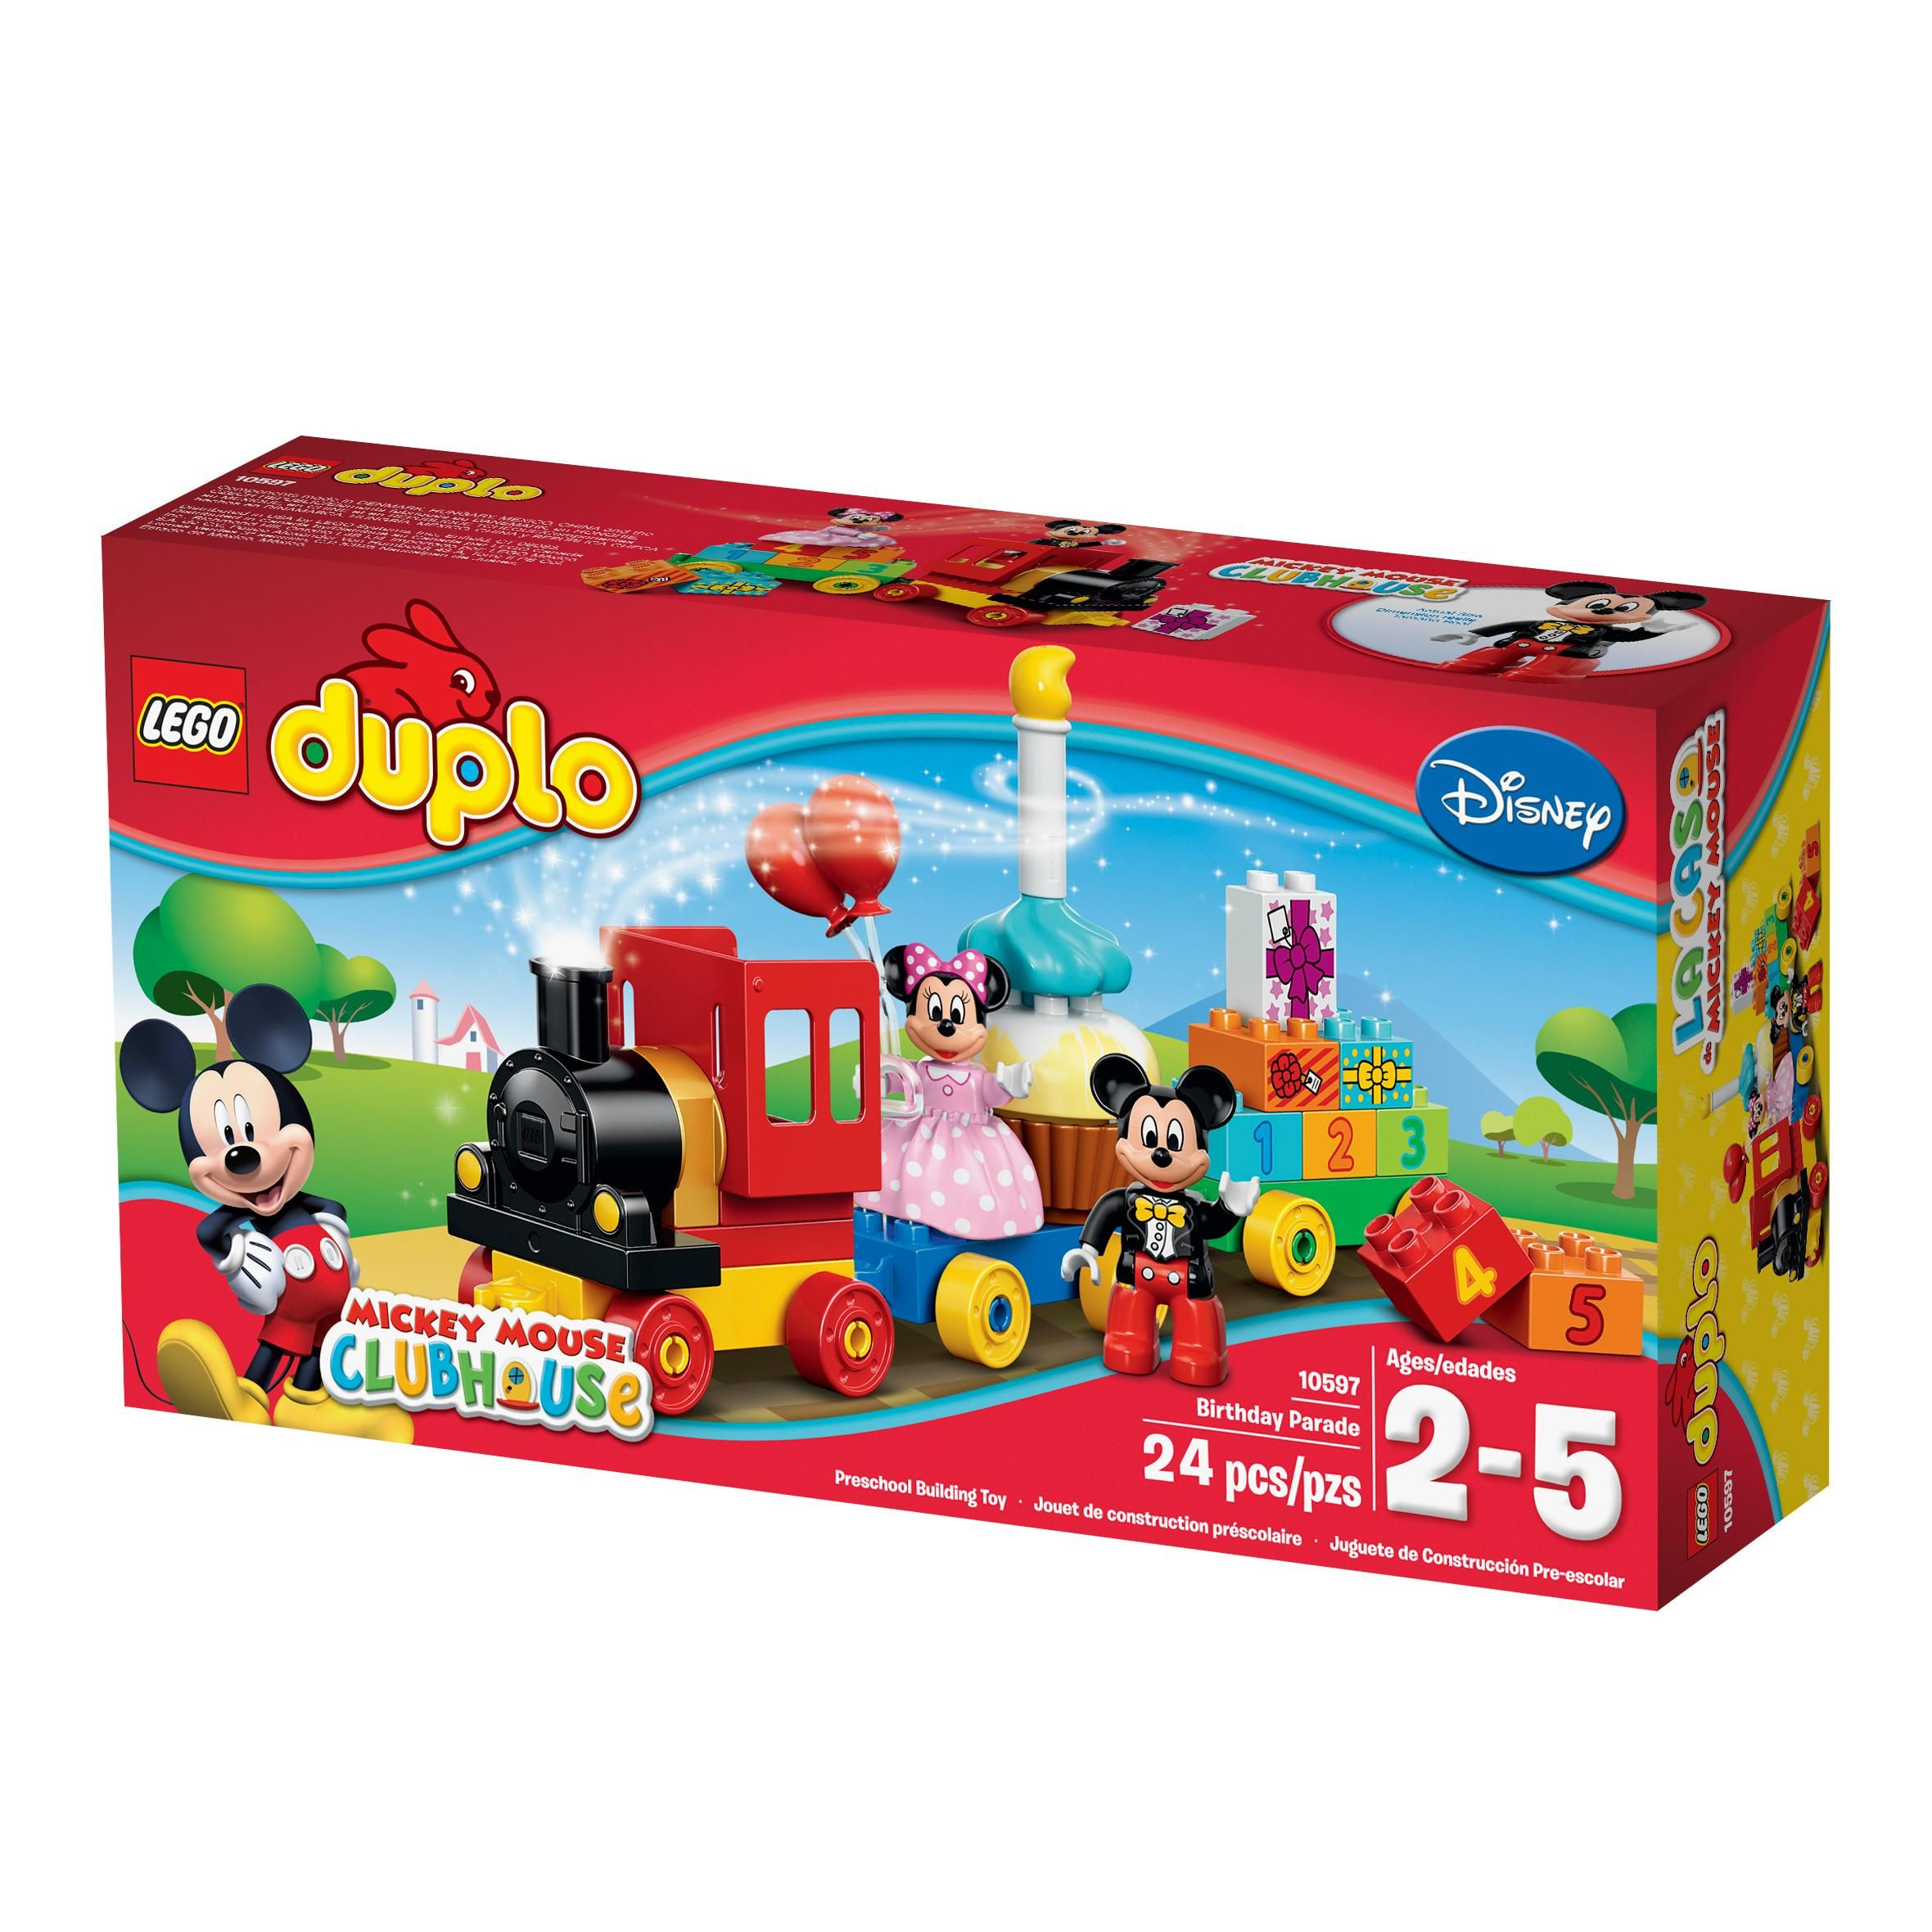 Educational Preschool Toy Building Blocks For Your Toddler With Images Lego Duplo Lego Disney Mickey Birthday